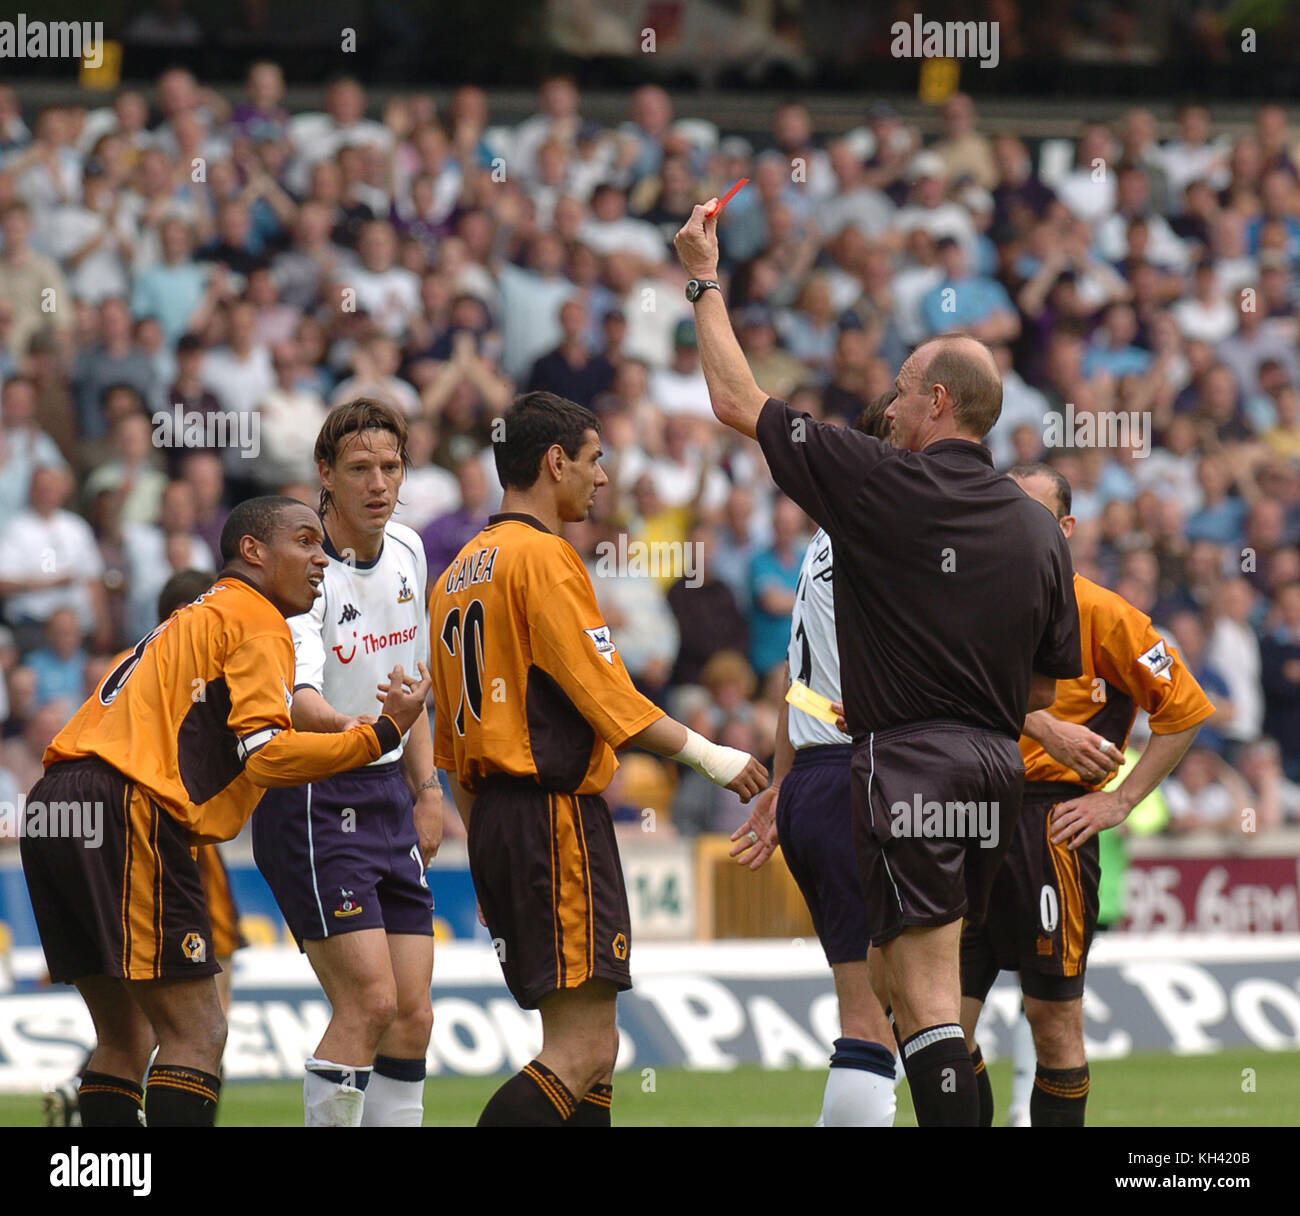 Paul Ince is sent off as referee Steve Bennett shows the red card. Wolverhampton Wanderers v Tottenham Hotspur 15/5/04 - Stock Image